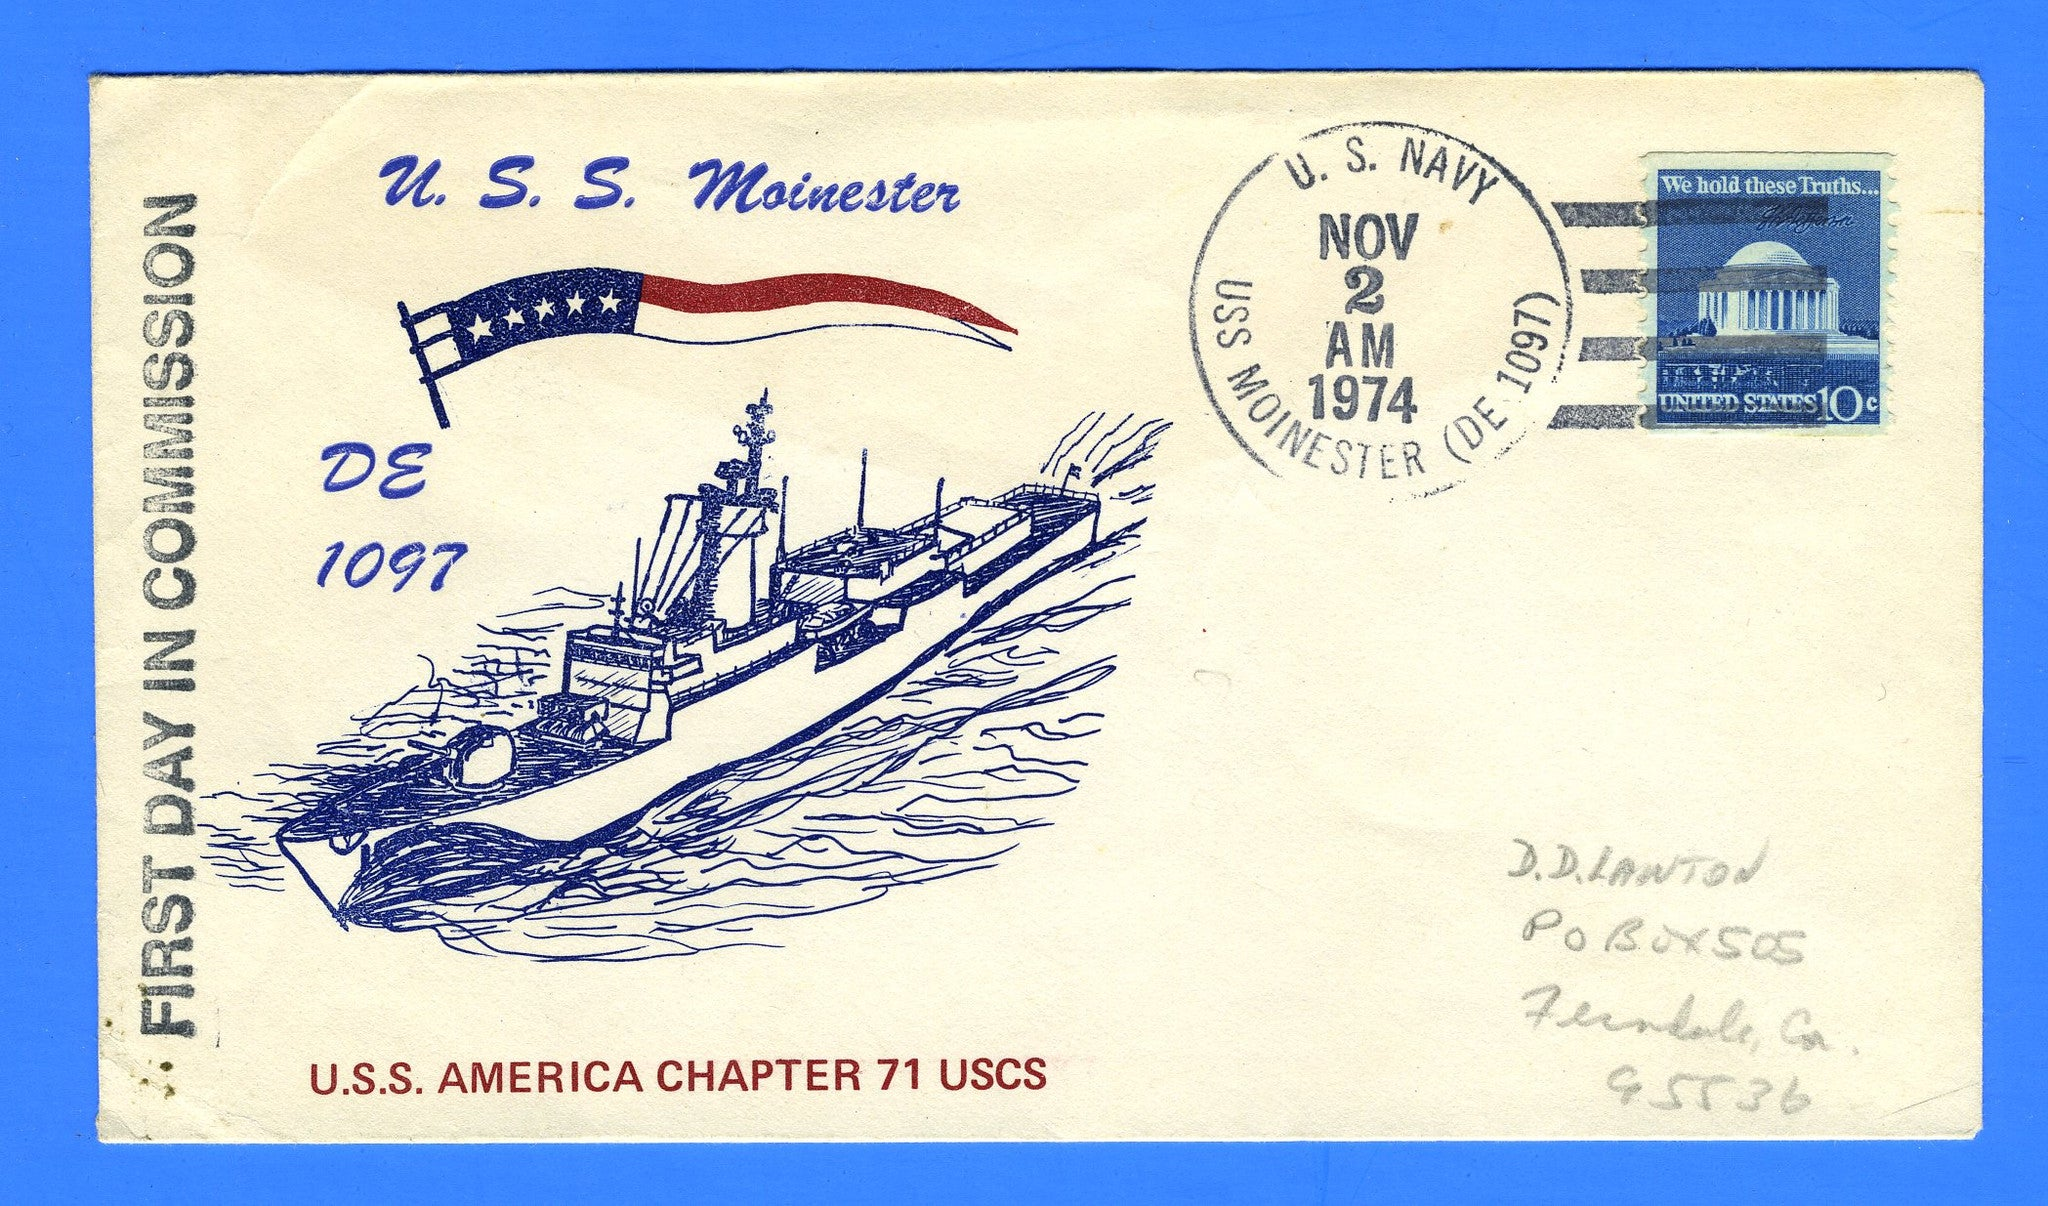 USS Moinester DE-1097 Commissioned November 2, 1974